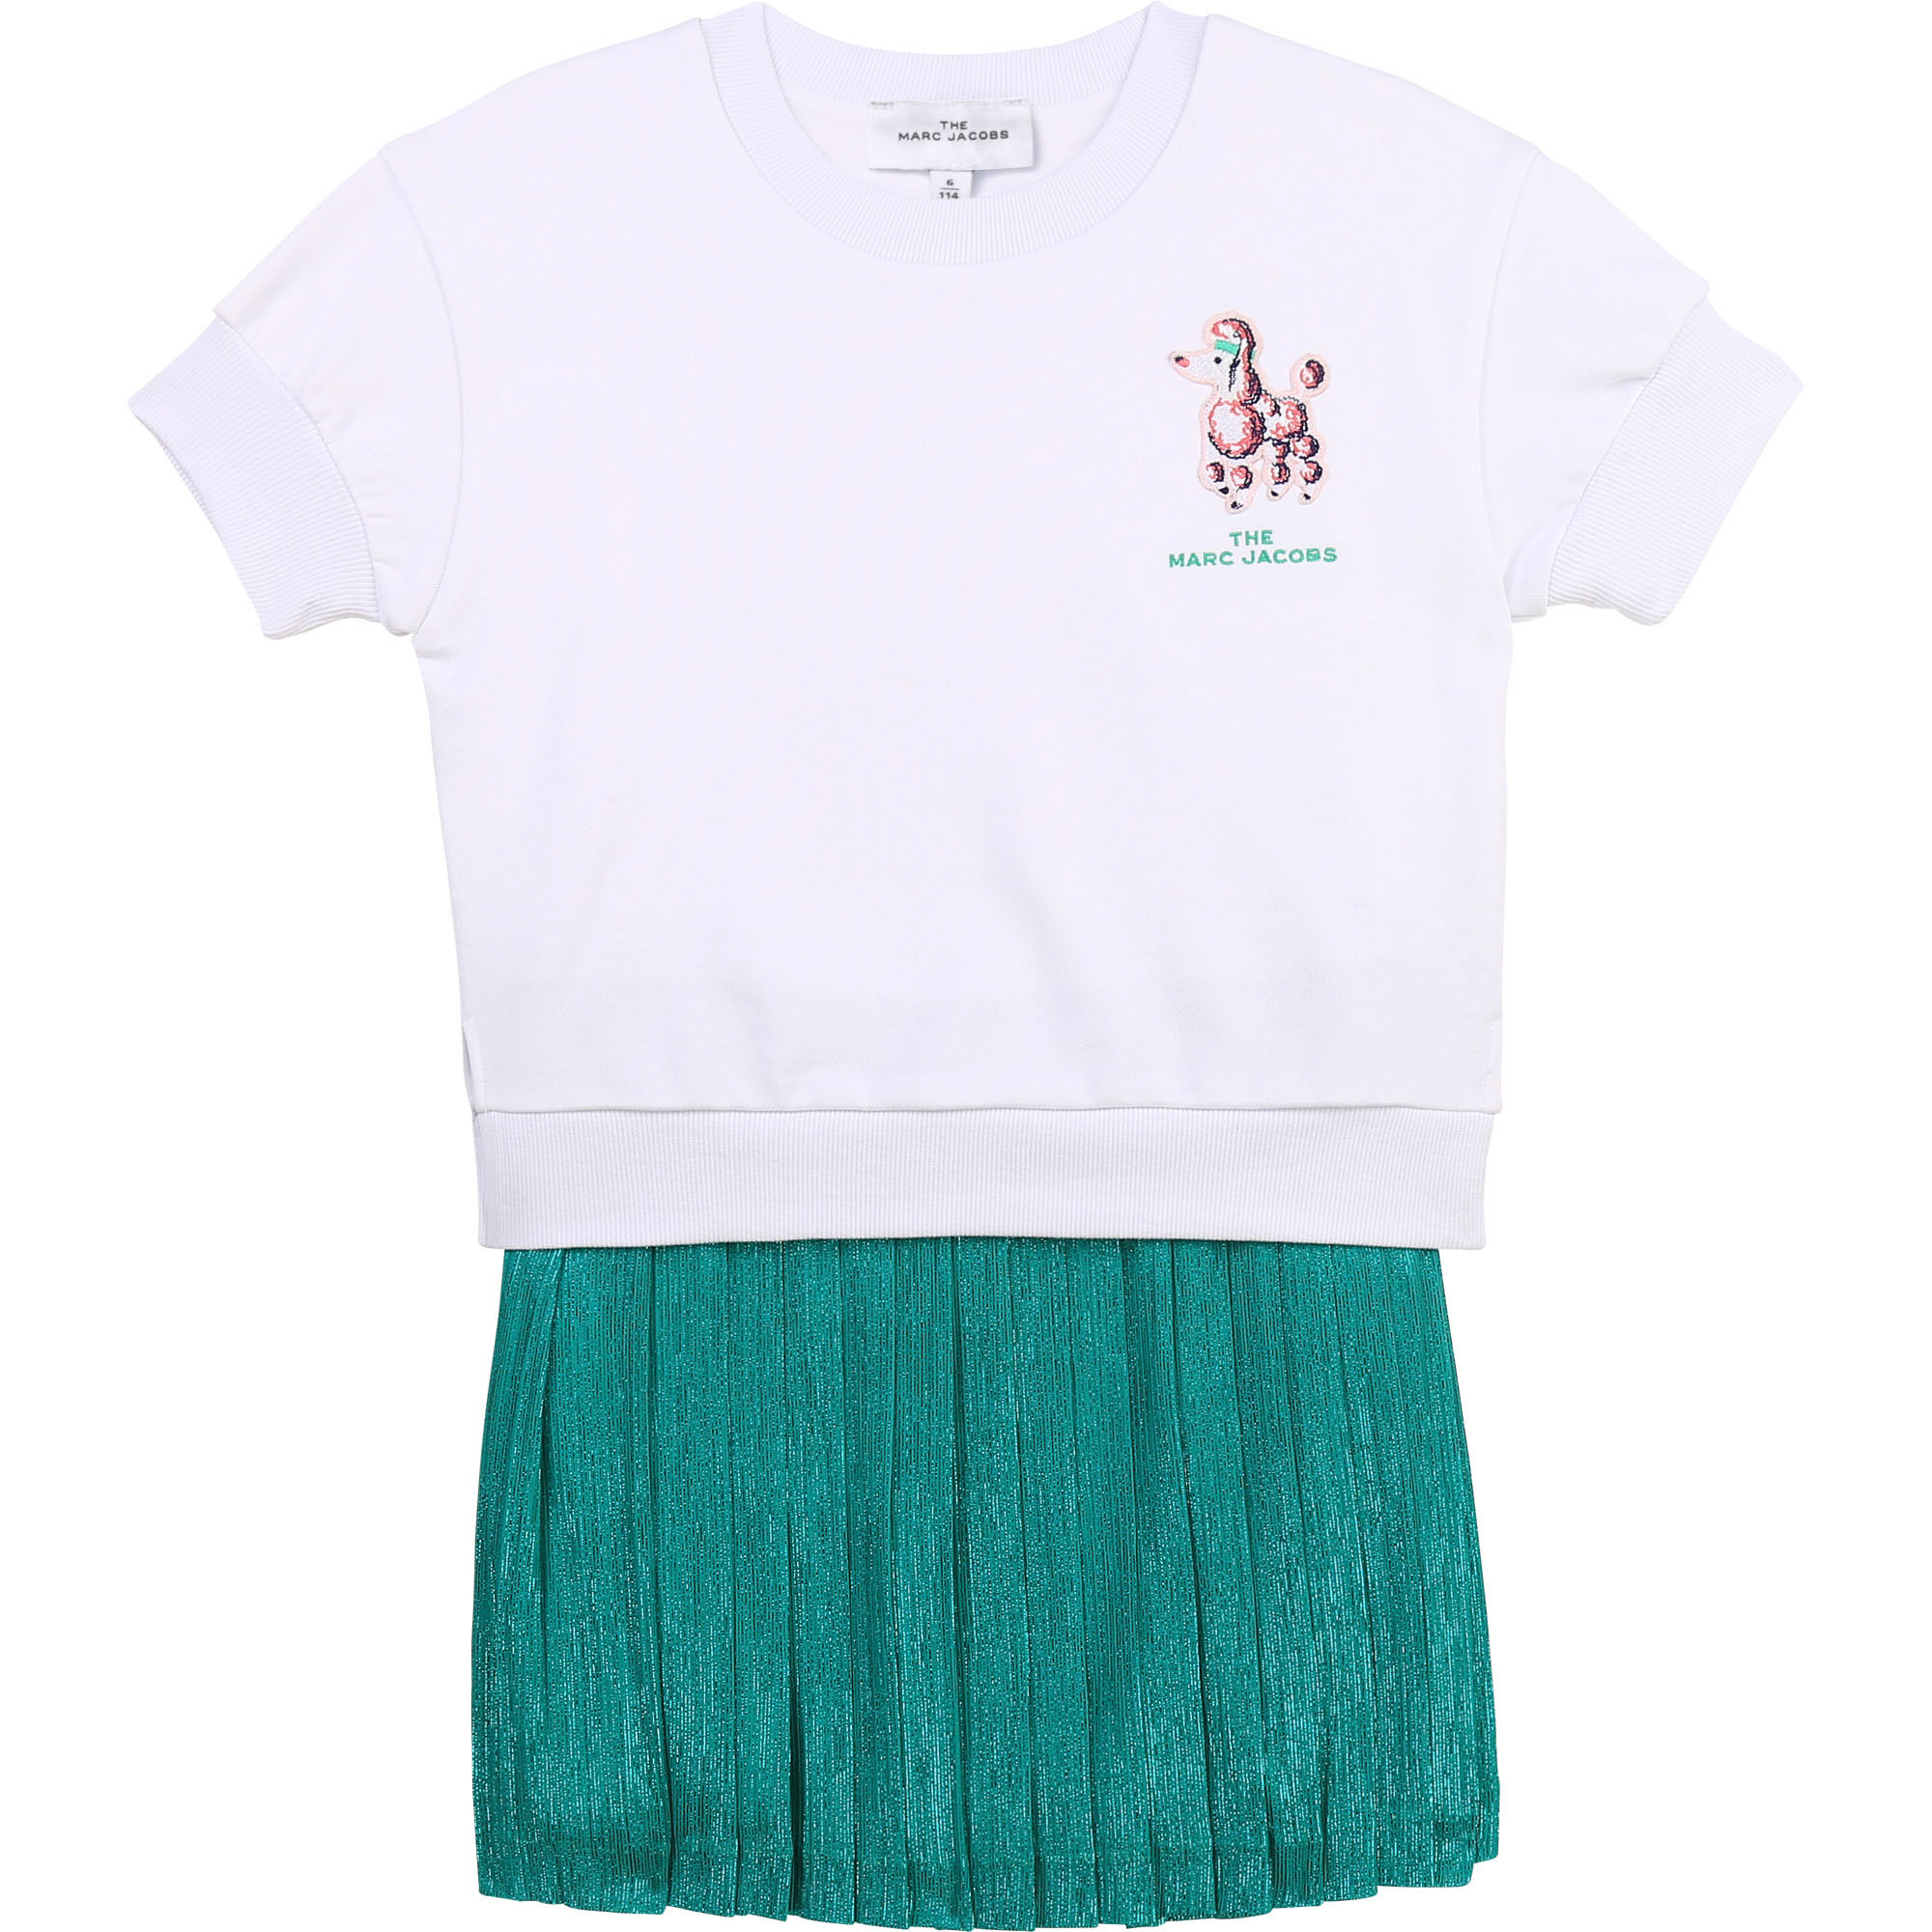 Dual-material 2-in-1 dress THE MARC JACOBS for GIRL